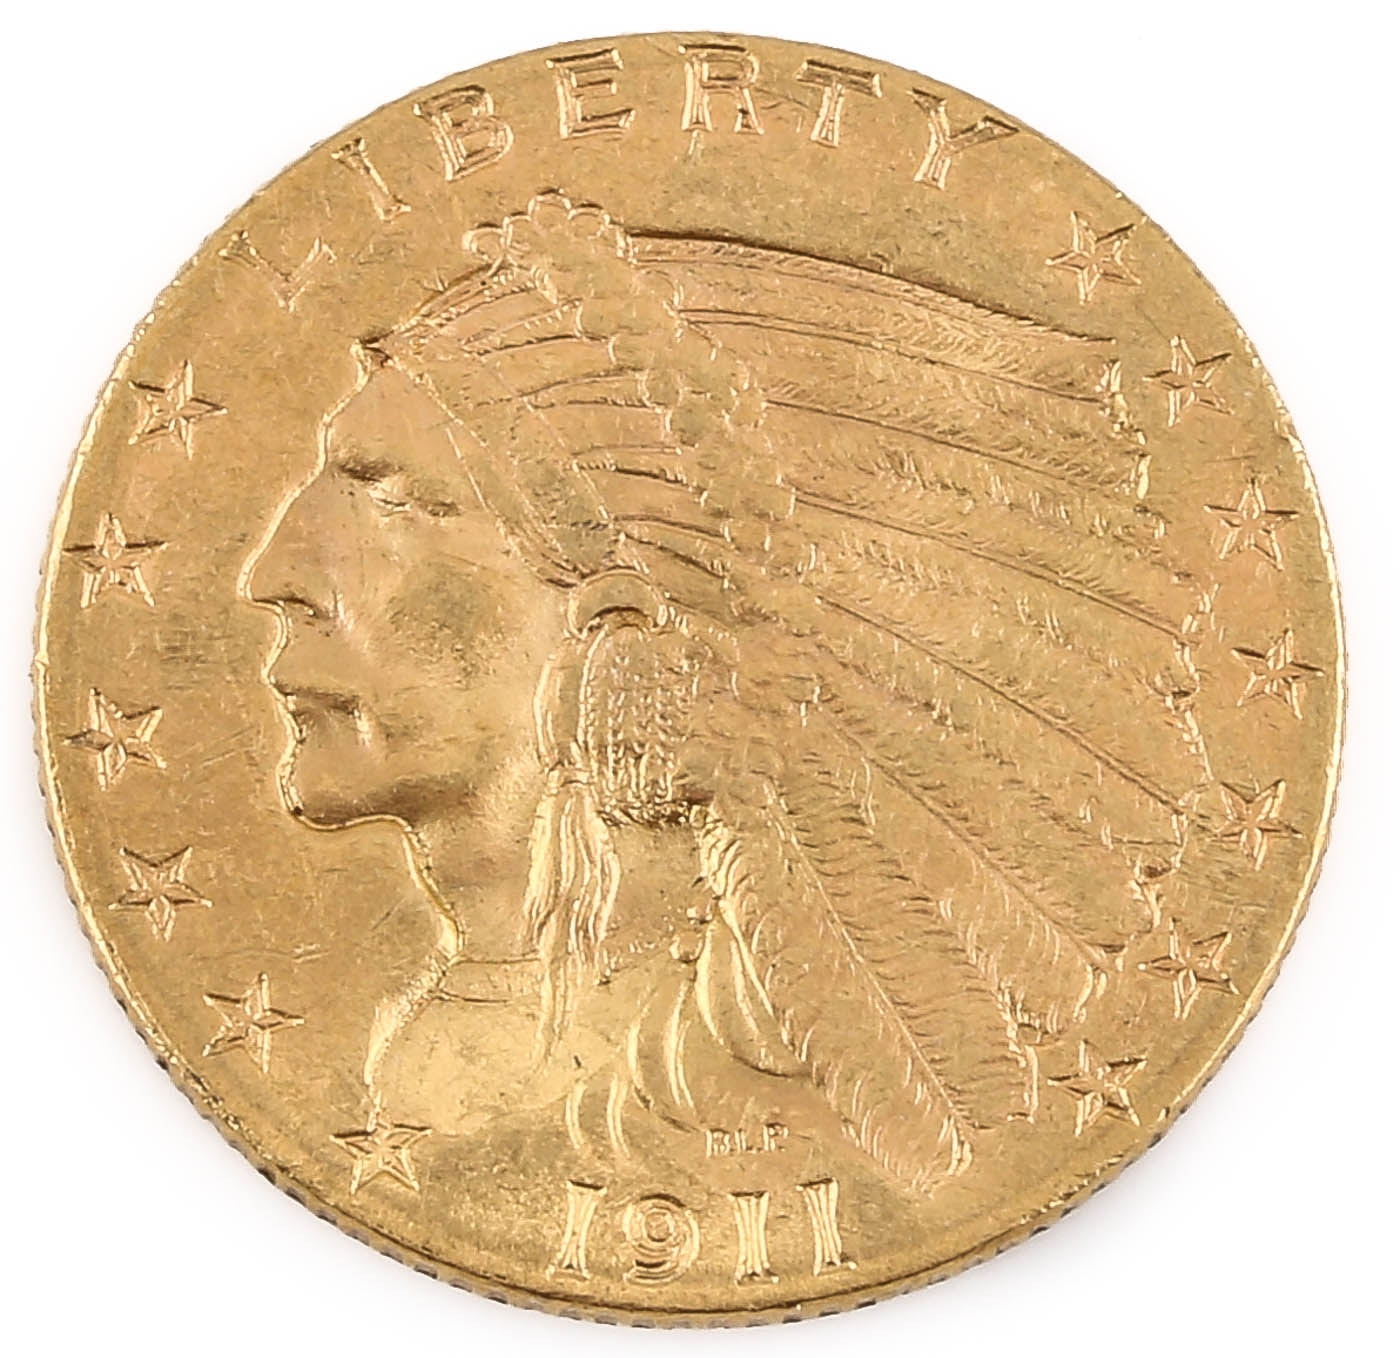 1911 Indian Head $2 1/2 Gold Coin